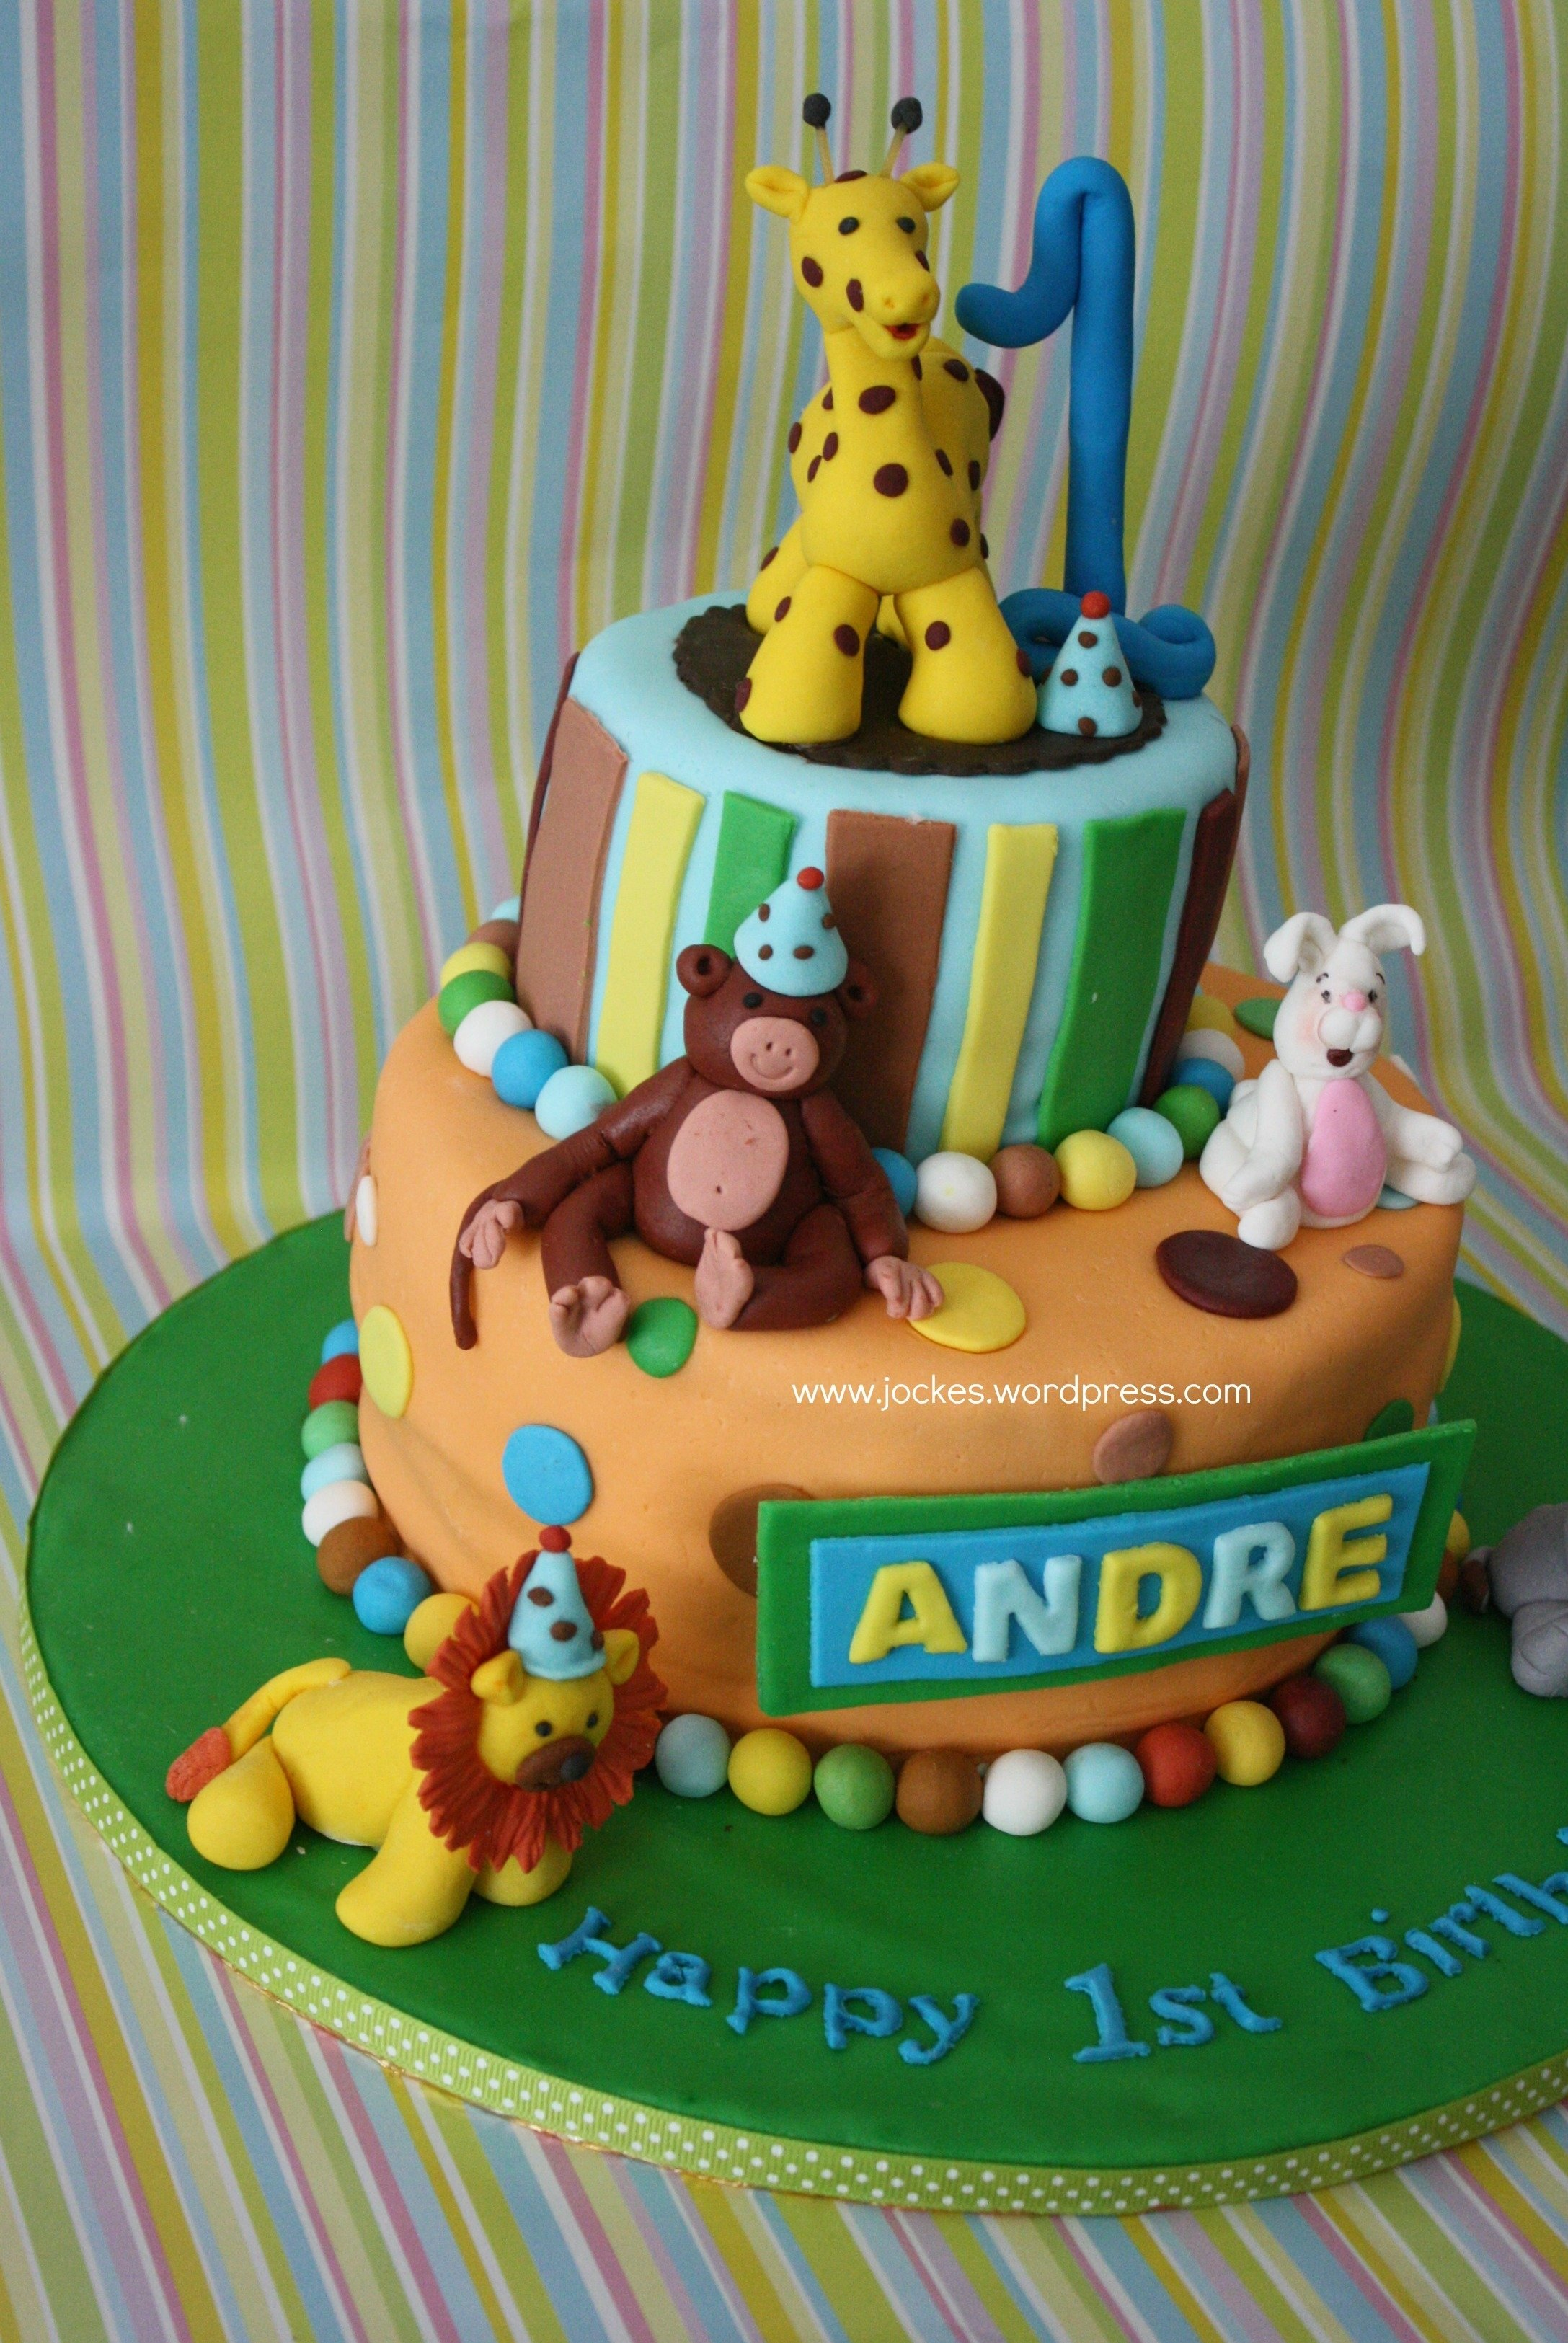 10 Ideal 1 Year Old Birthday Picture Ideas birthday cakes for 1 year olds boy google search cookery recipes 2 2020